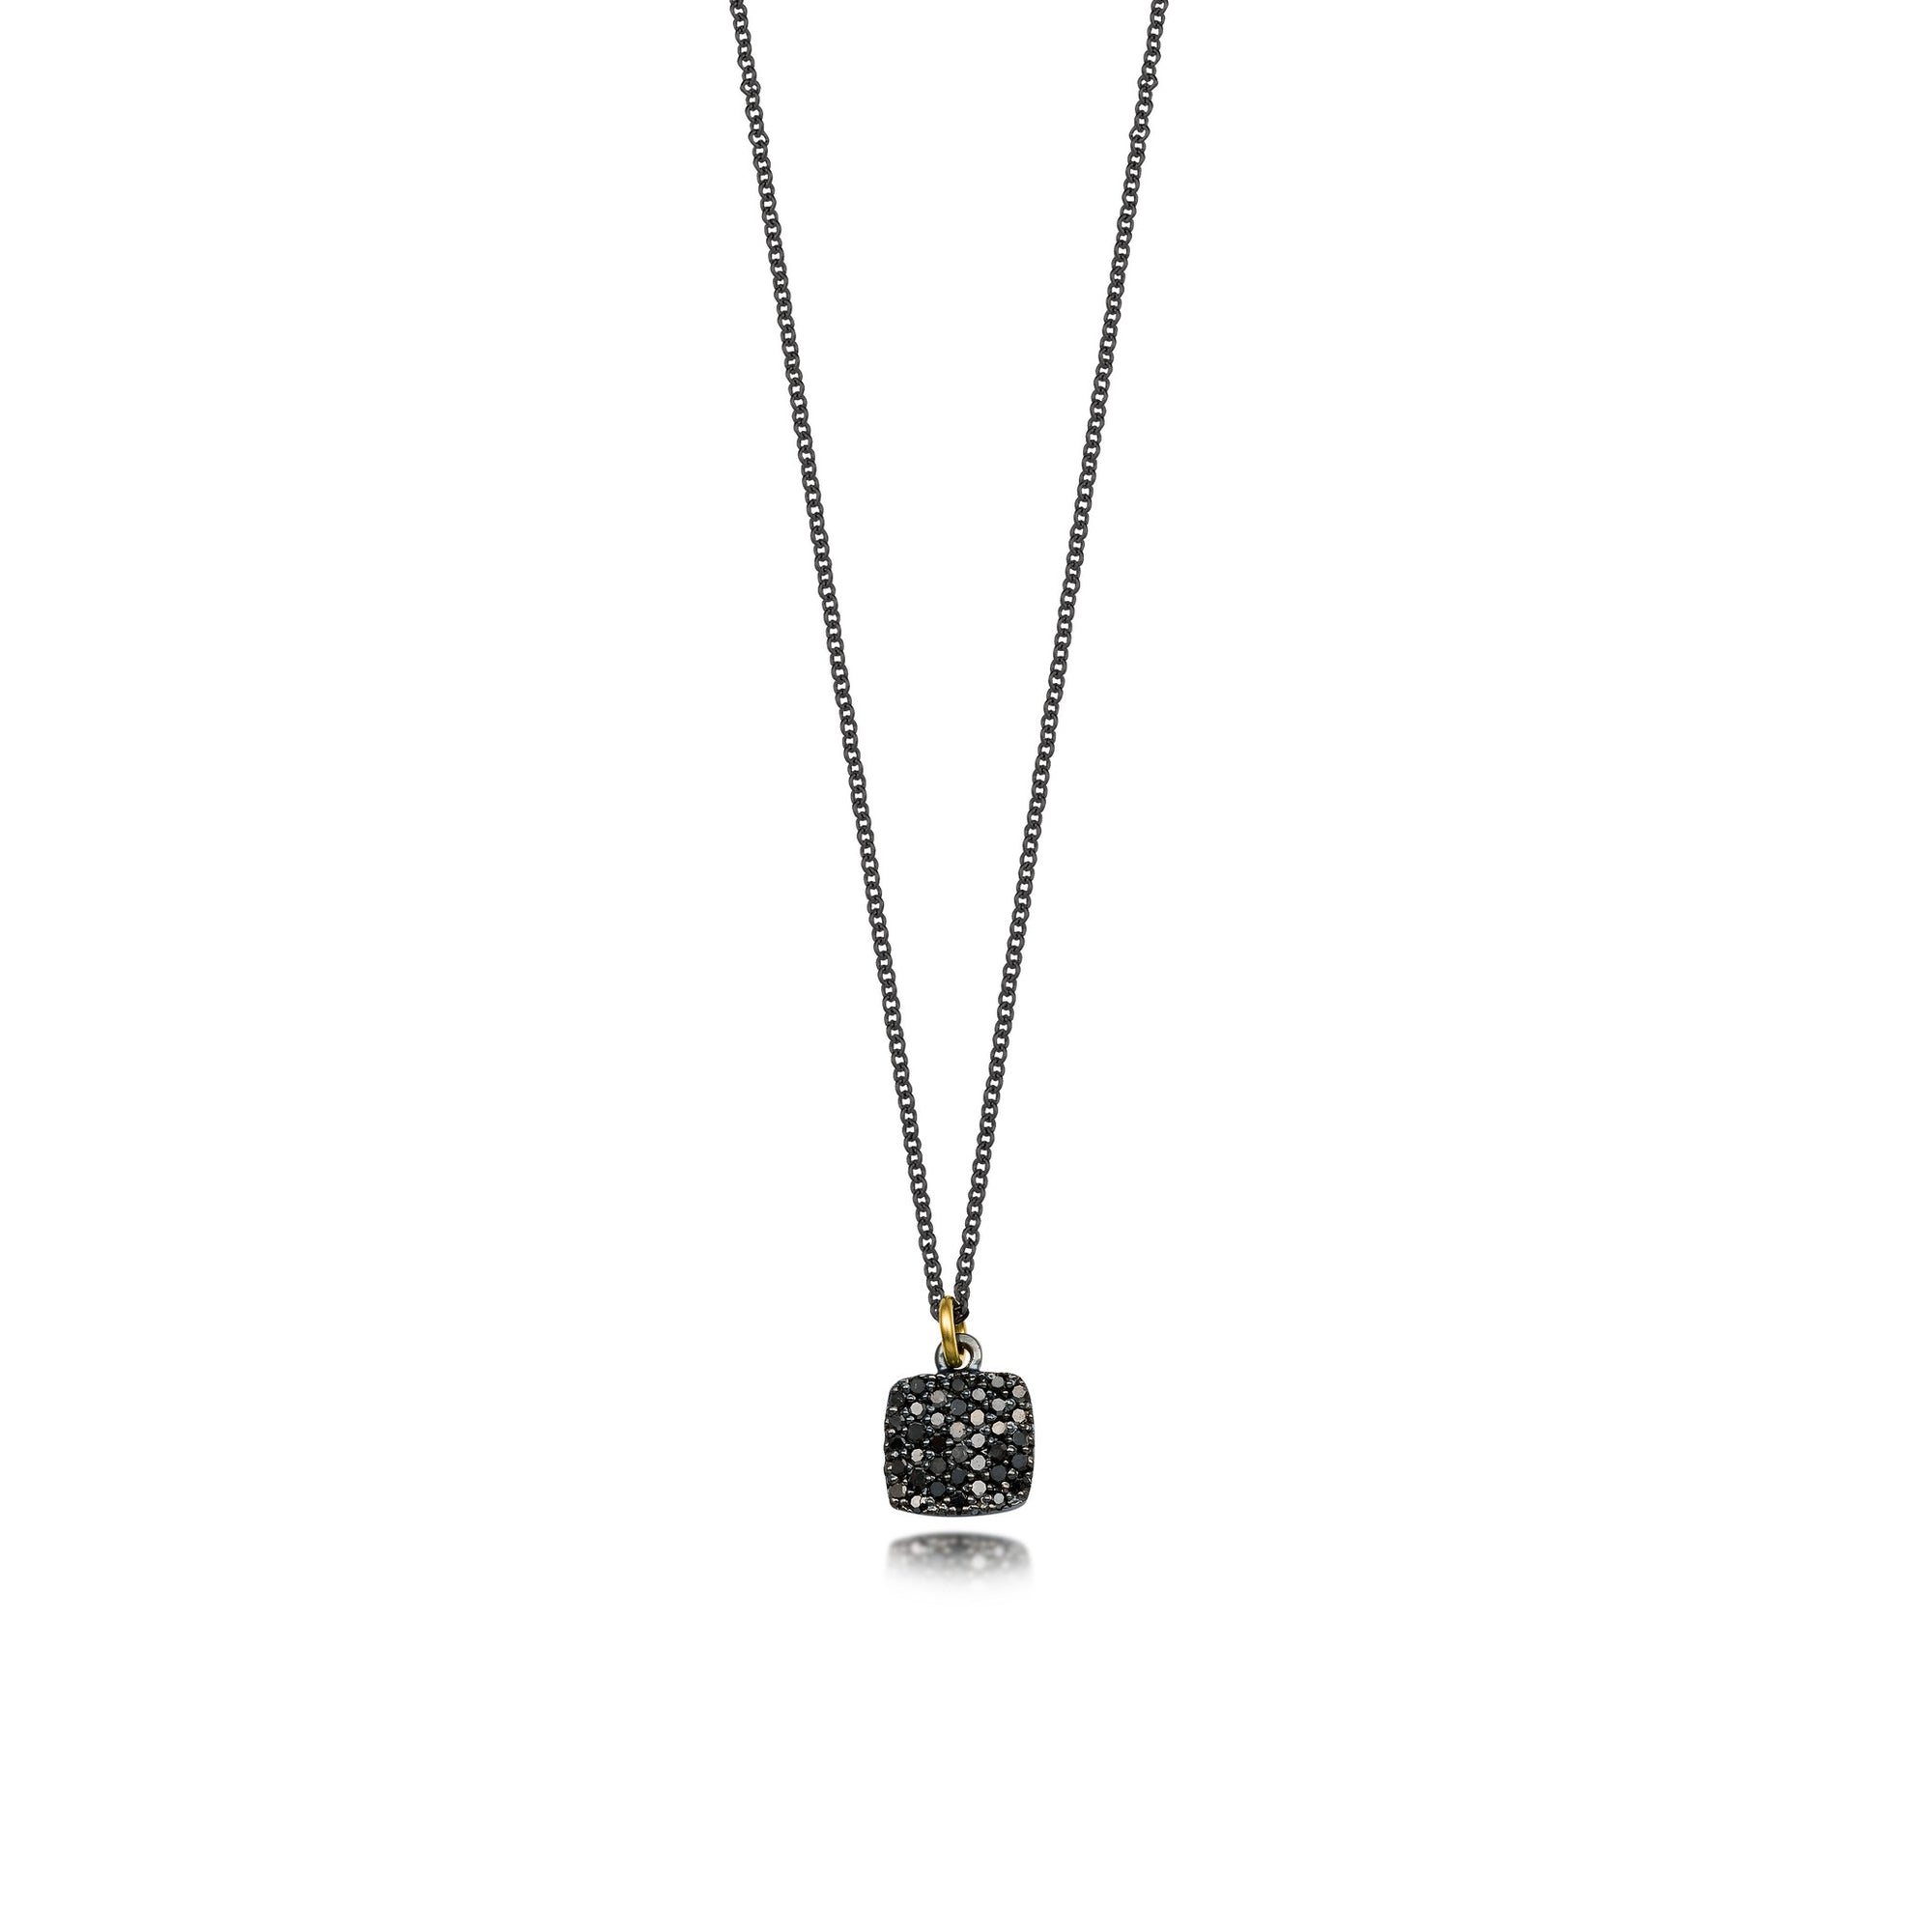 westwood necklaces kika pendant jewellery rhodium crystal diamond black vivienne